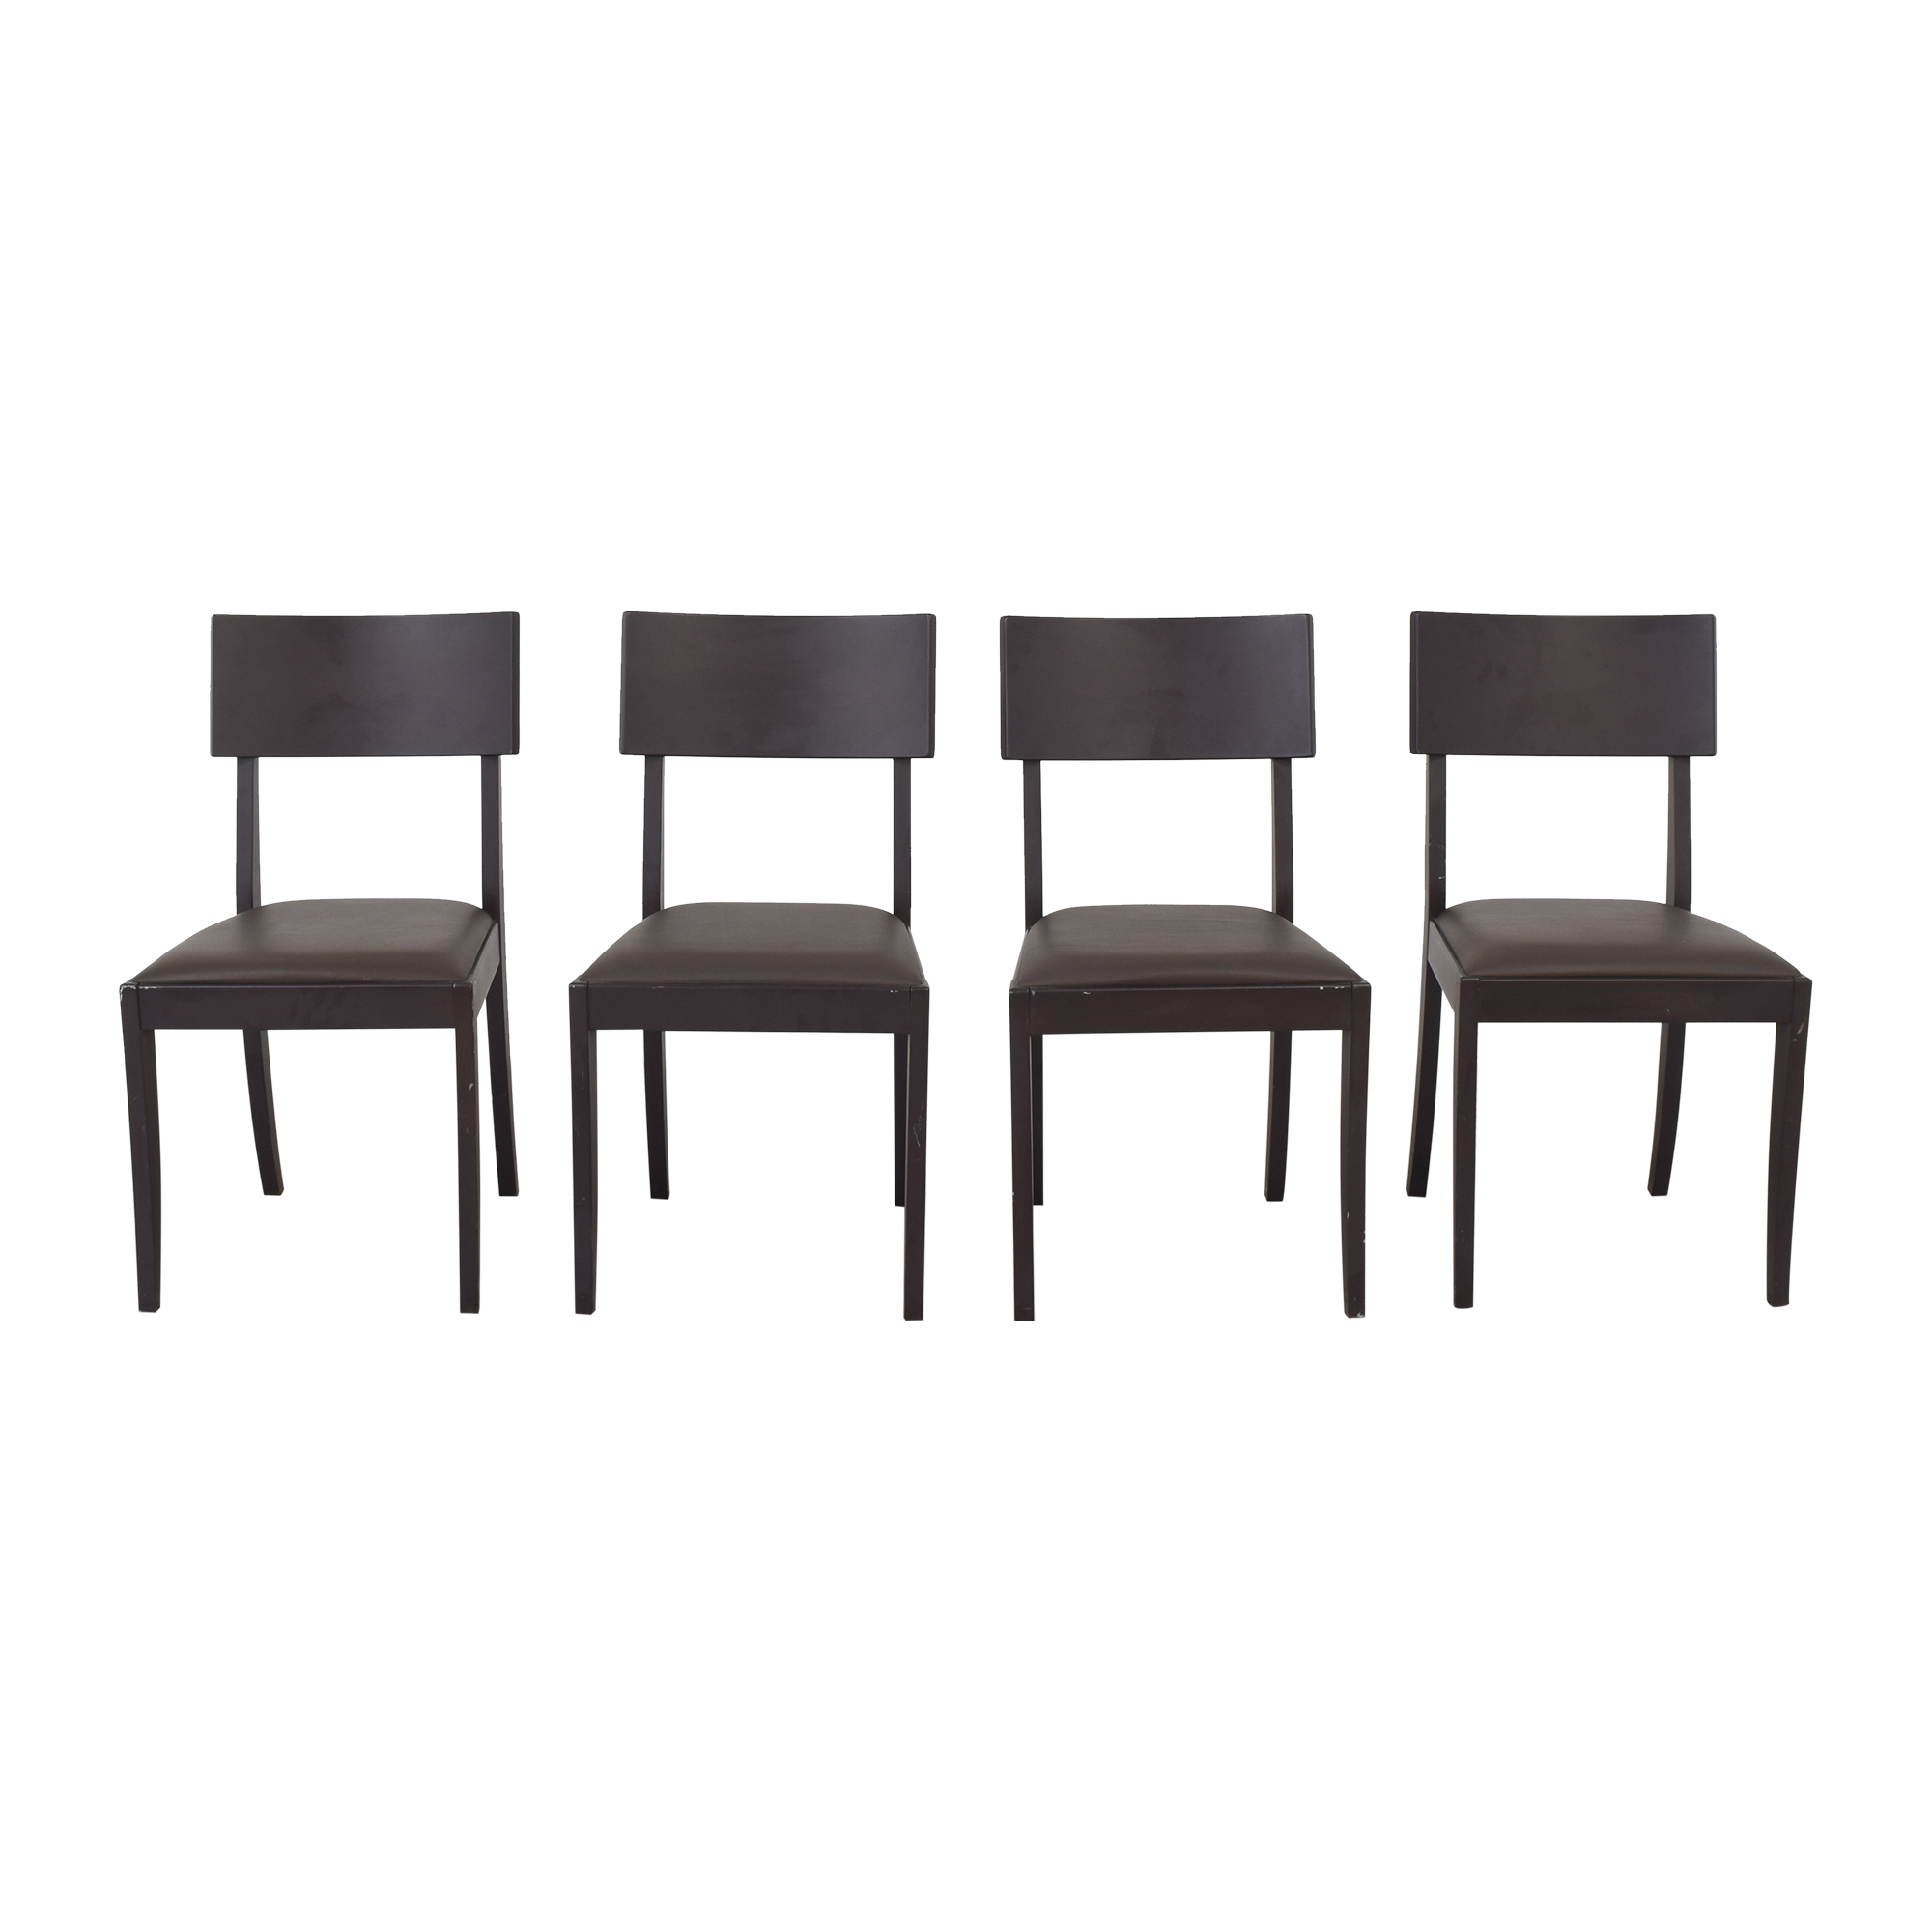 Crate & Barrel Crate & Barrel Dining Chairs ma